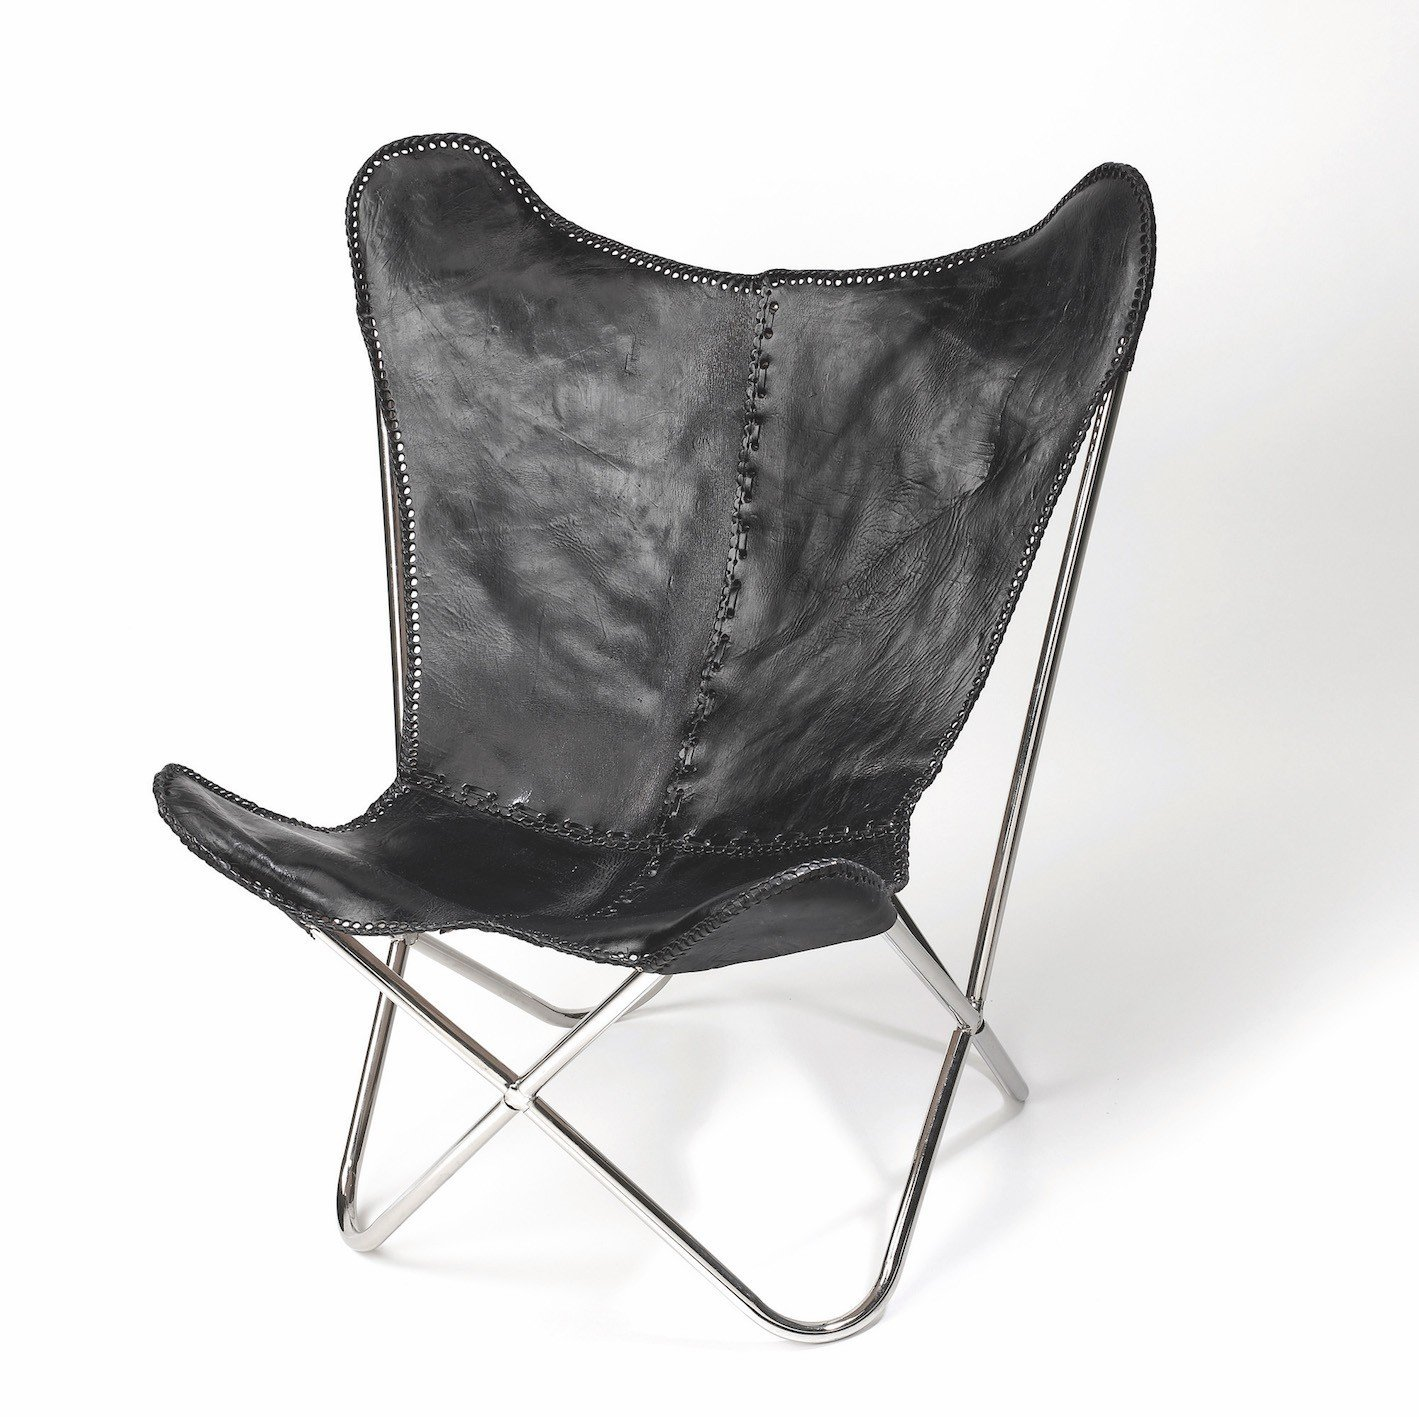 Butterfly metal chair - Butterfly Metal Chair 31